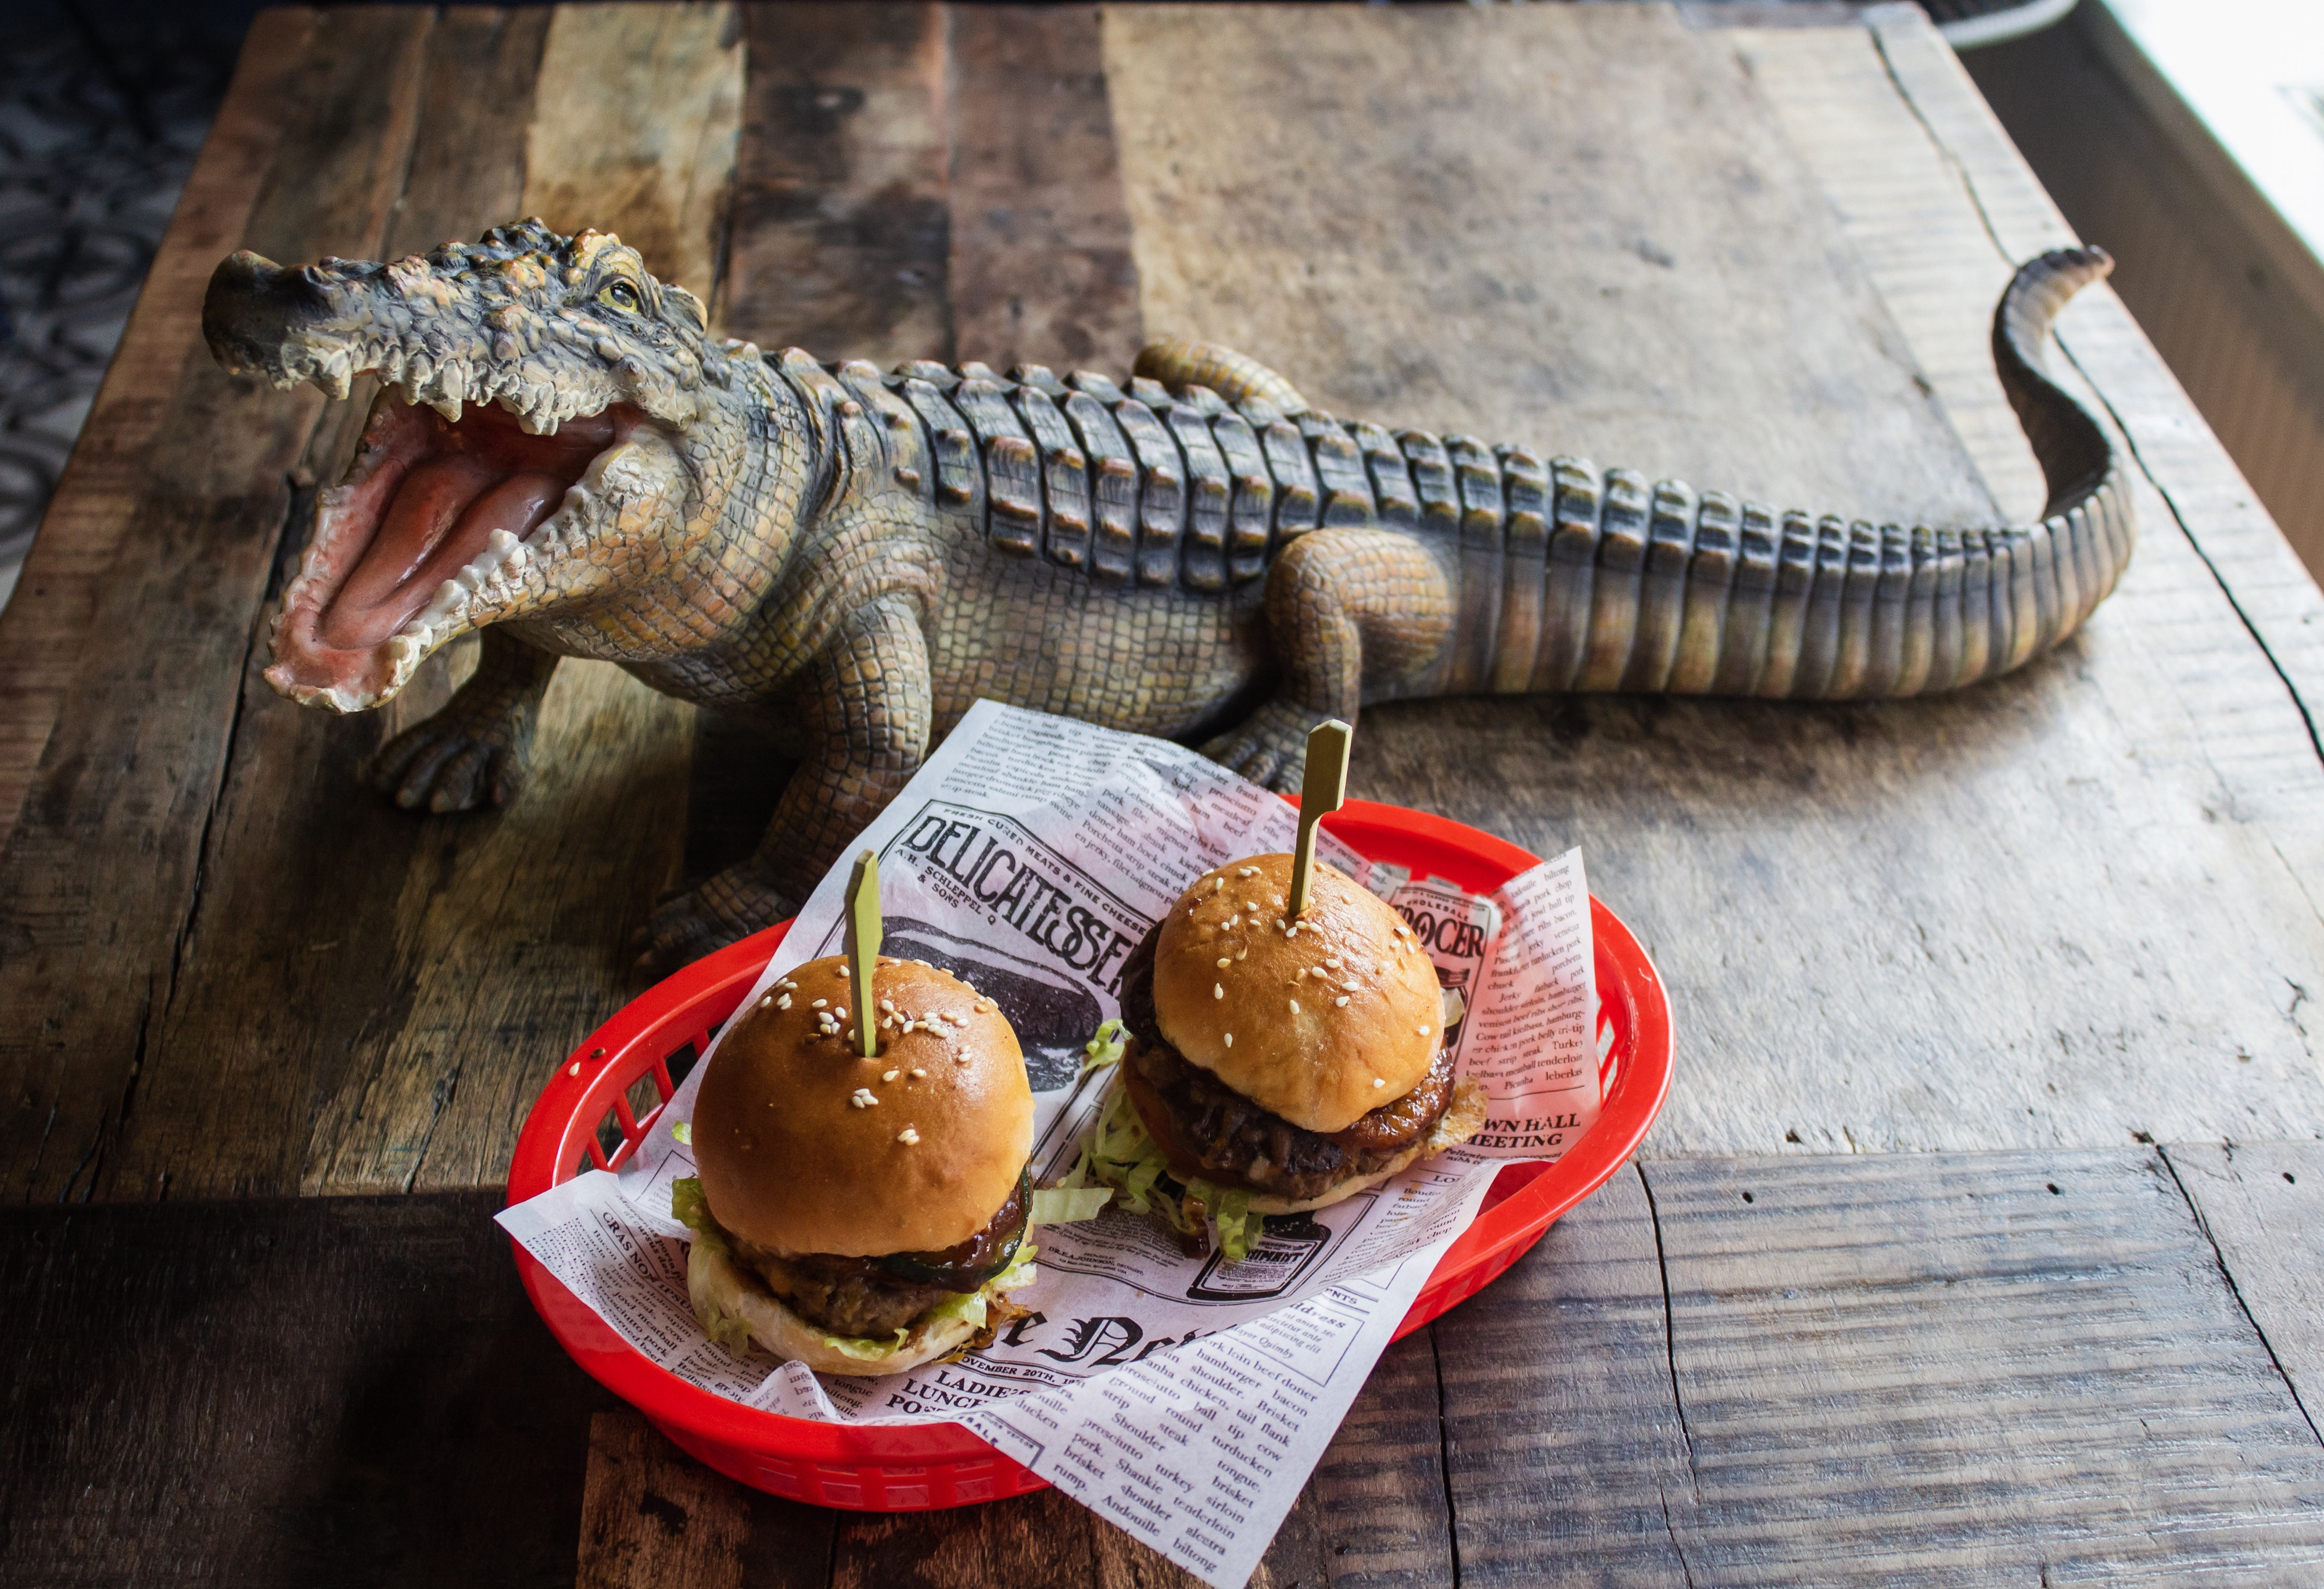 A couple of fresh burgers served in a red basket at a Louisiana bar. An alligator statue sits on the table with the burgers.